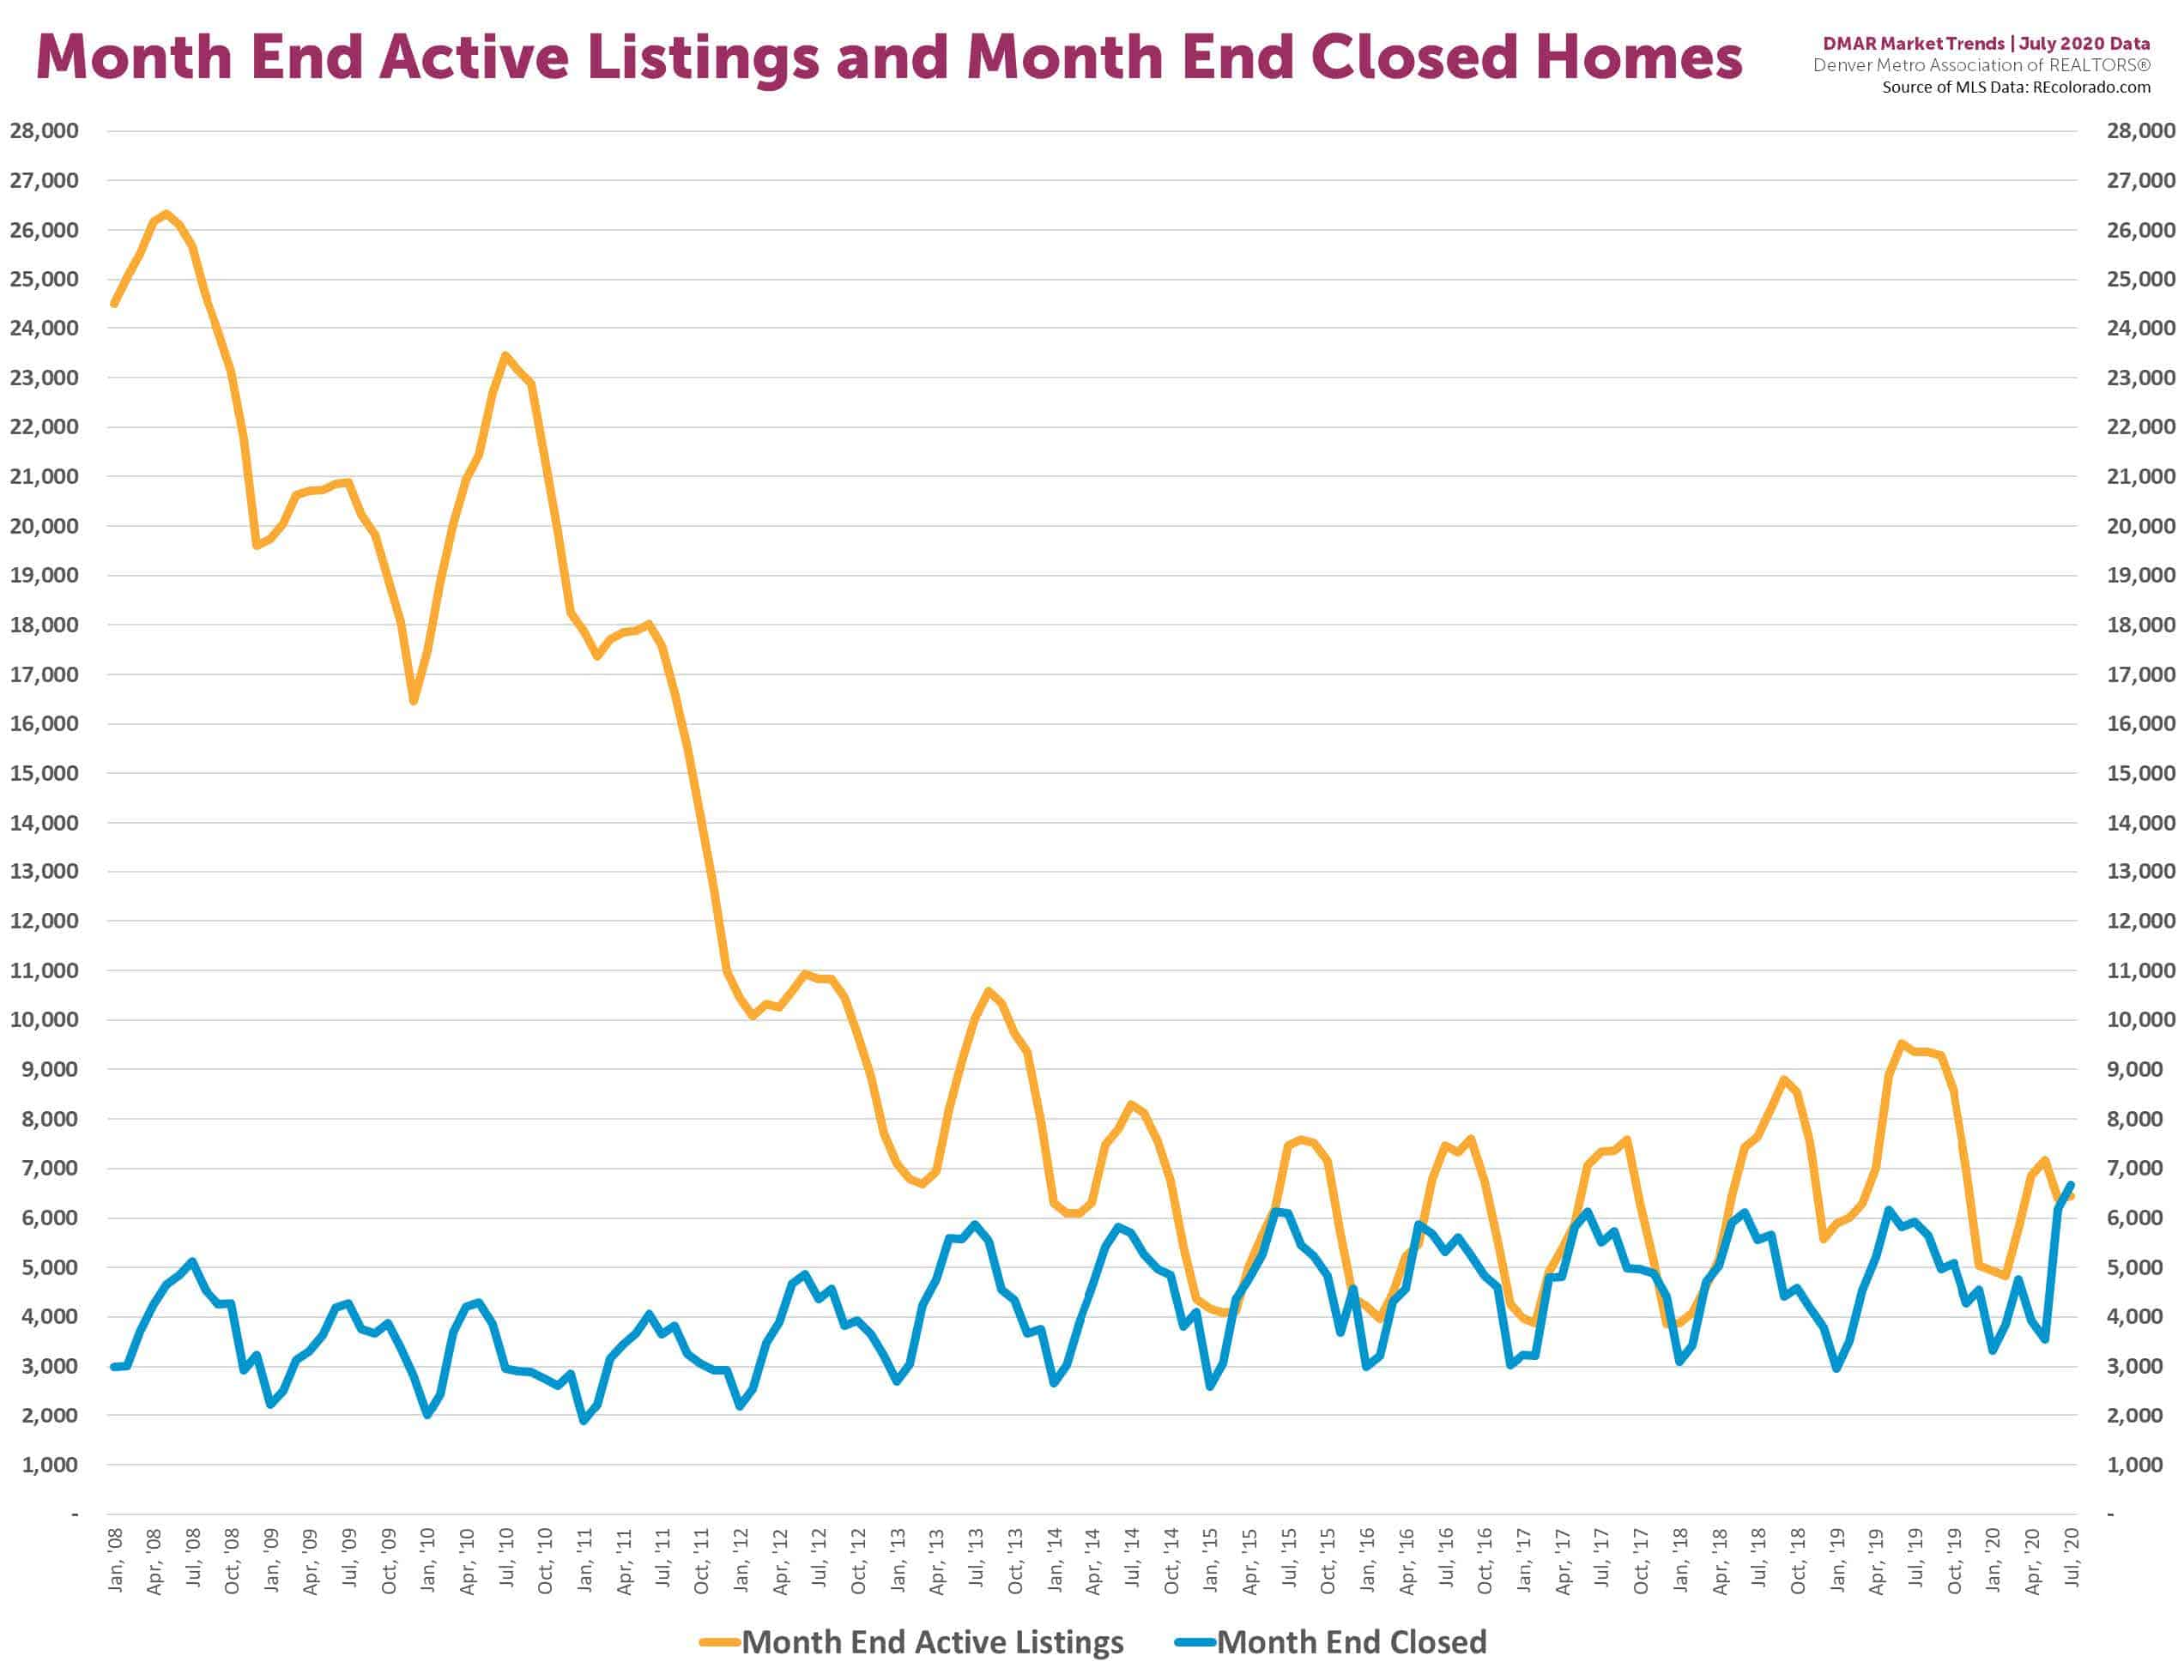 sold-vs-active-inventory-08-20